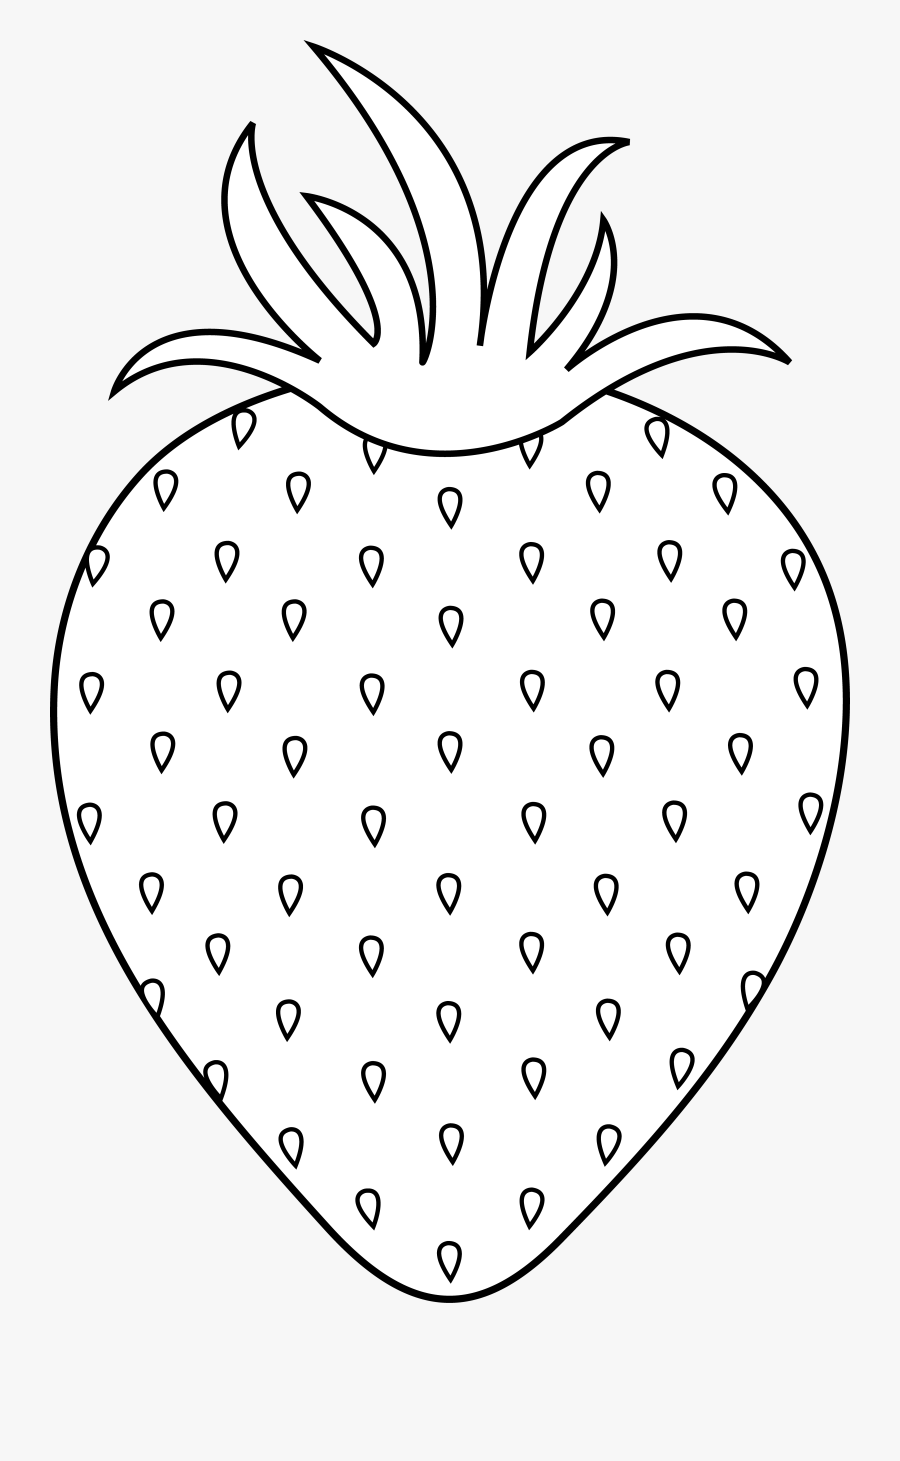 Clipart Black And White Strawberry - Seedless Fruit, Transparent Clipart